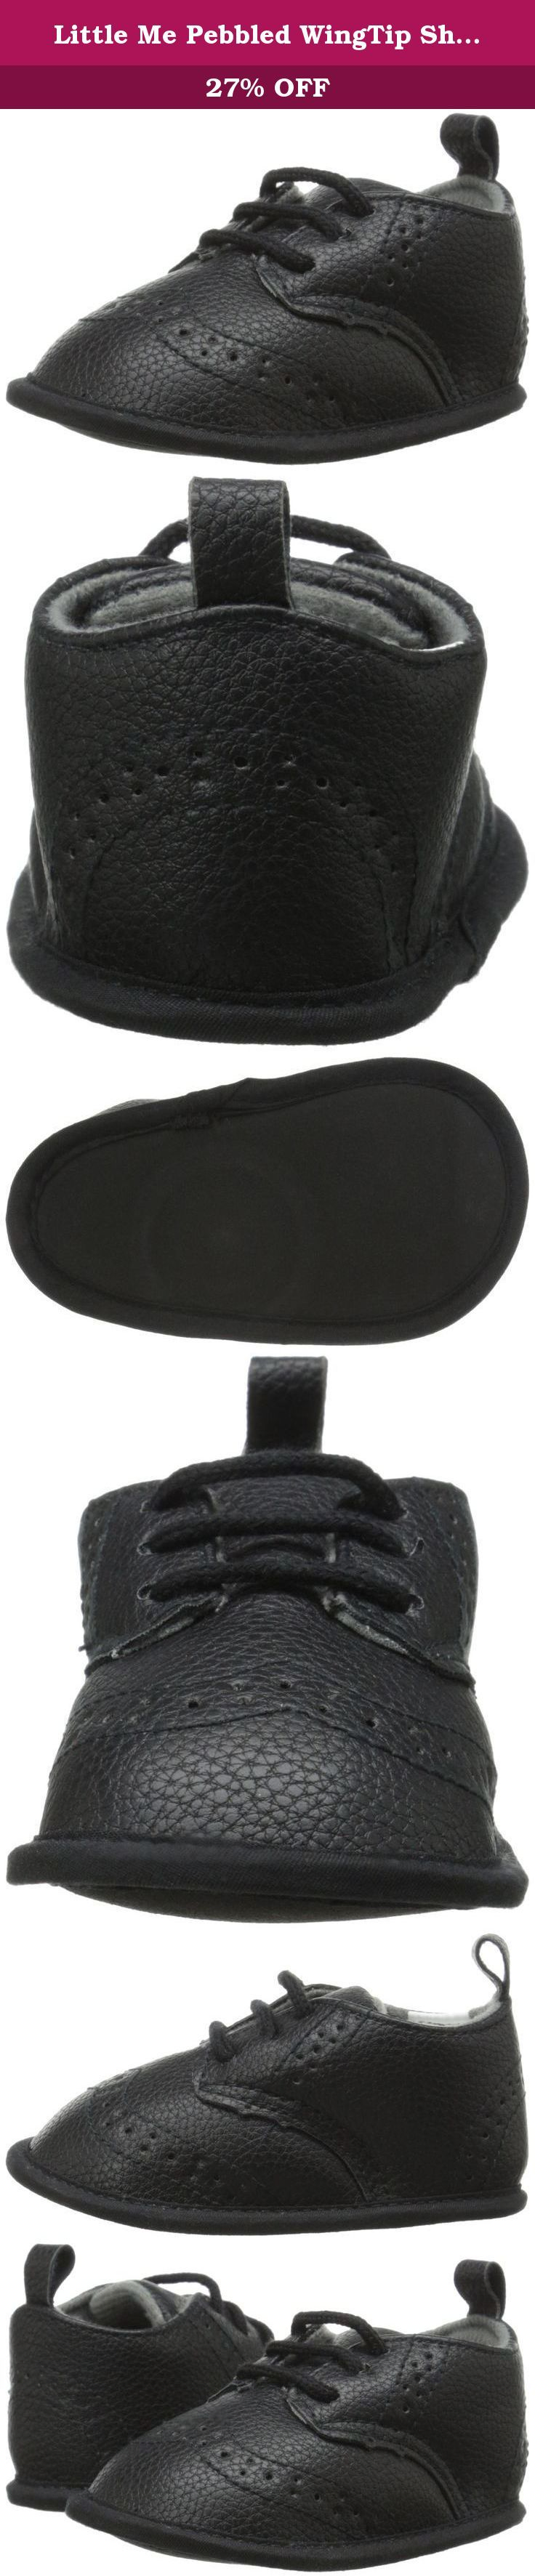 Little Me Pebbled WingTip Shoe Dress Shoe (Infant), Black, 9-12 Months M US Infant. Adorable dressy black shoes to match your baby boy's outfit for special occasions. Wing tip design and brogue detailing adds cute feature to this stylish shoe.